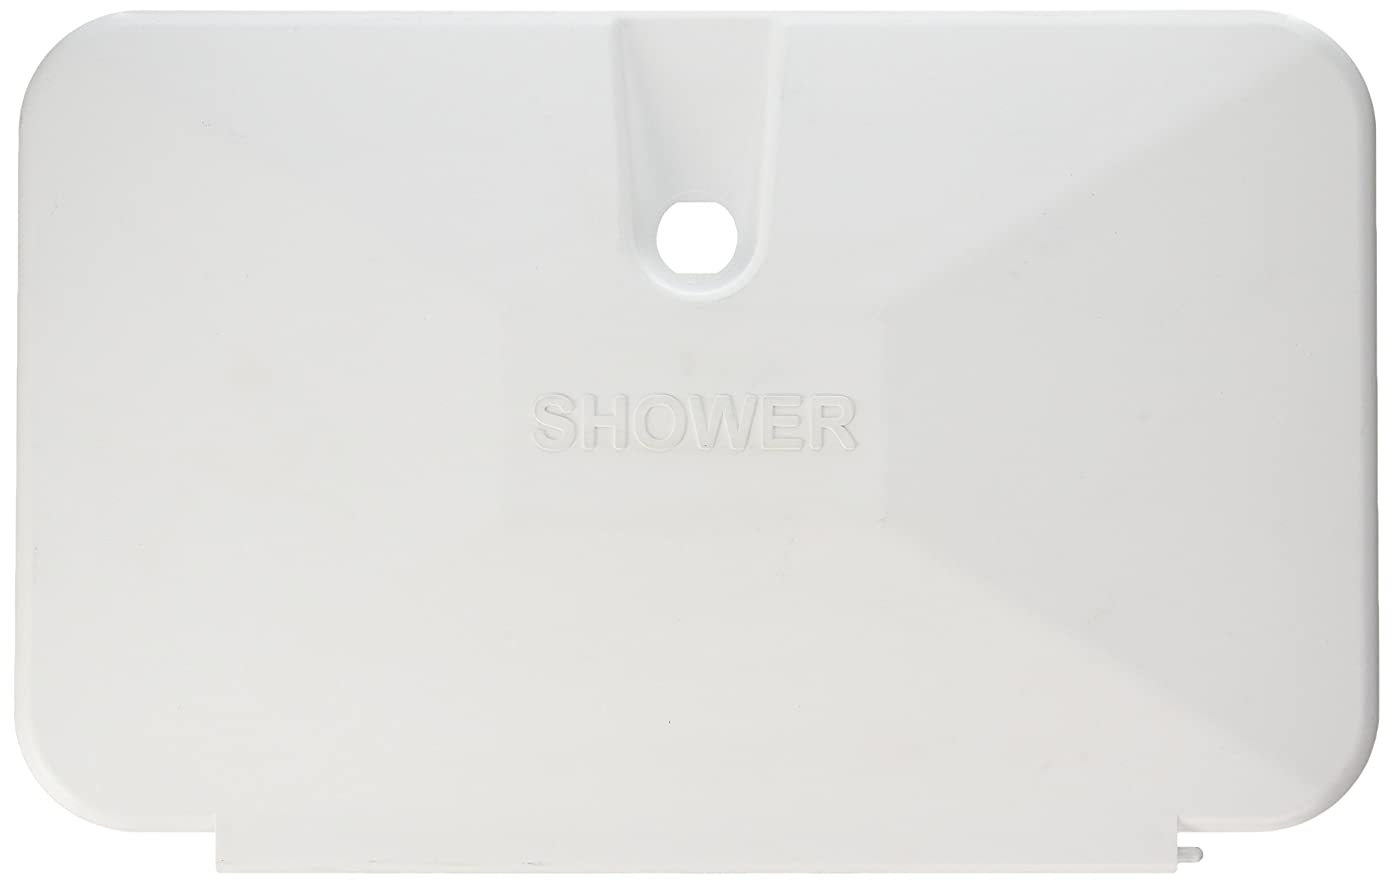 JR Products 1207.1049 620PW Replacement Door for Exterior Shower 5M102-A - Polar White